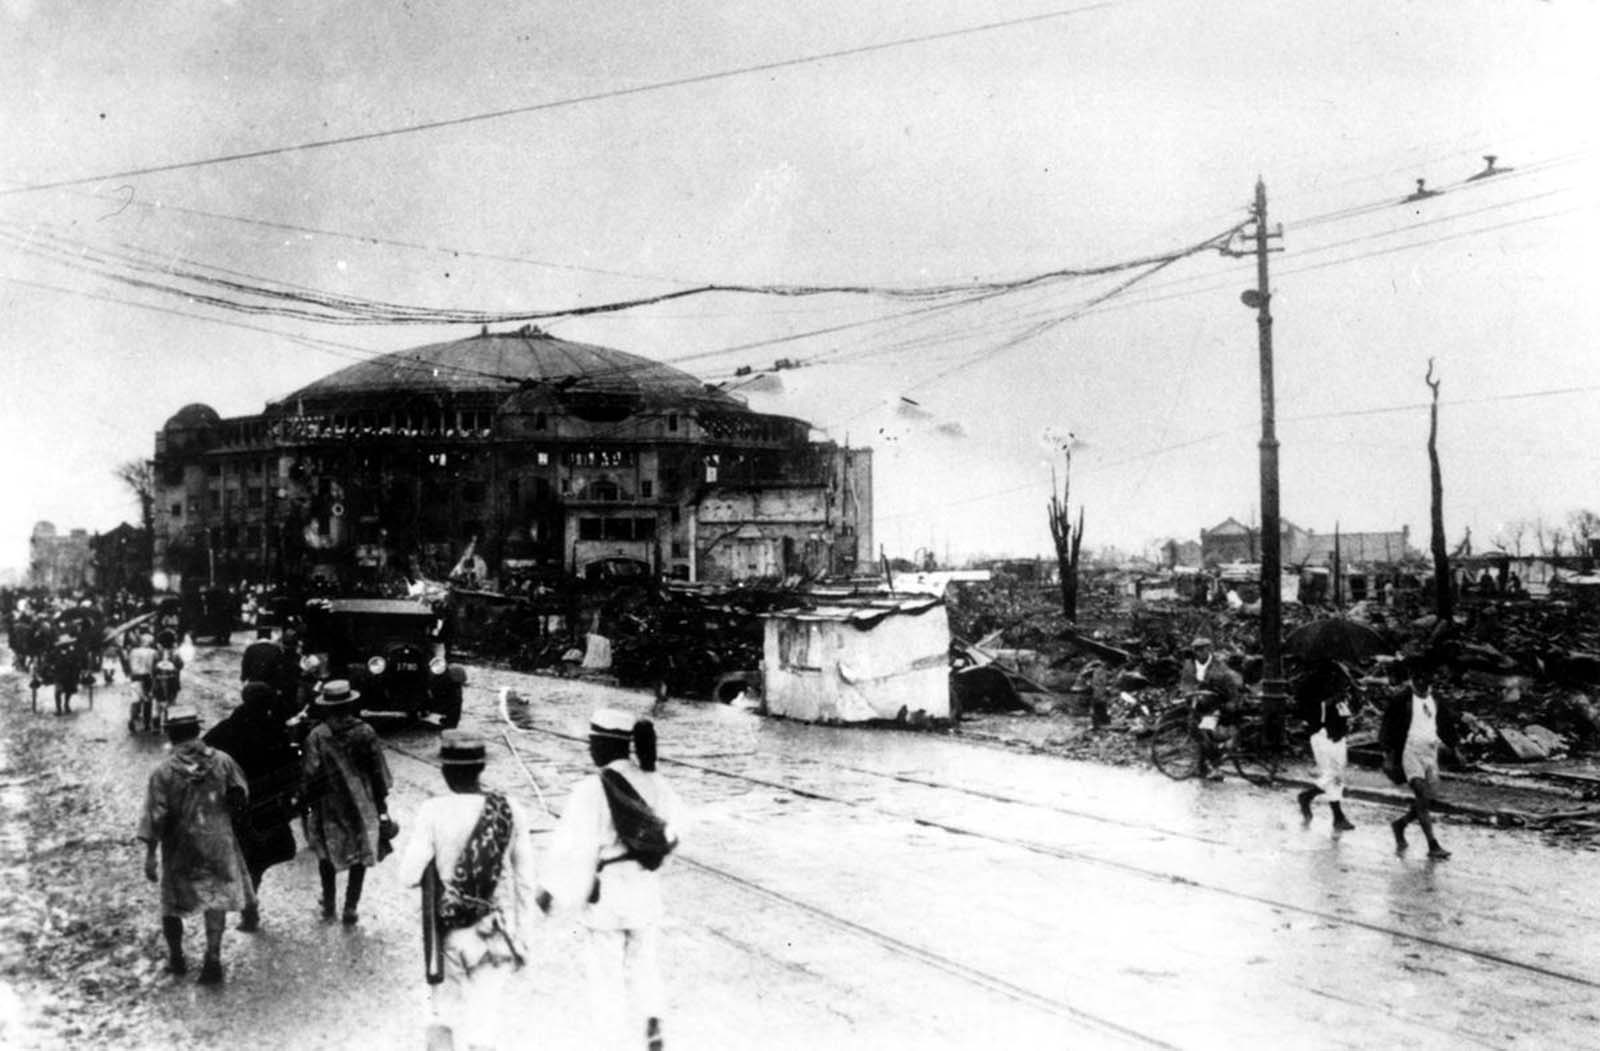 People walk in the devastated area of Yuoguku in Tokyo, Japan, after the earthquake that struck on Sept. 1, 1923. In the background is the gutted domed building Kokugikan, National Sumo Wrestling arena, in the Ryoguku district.